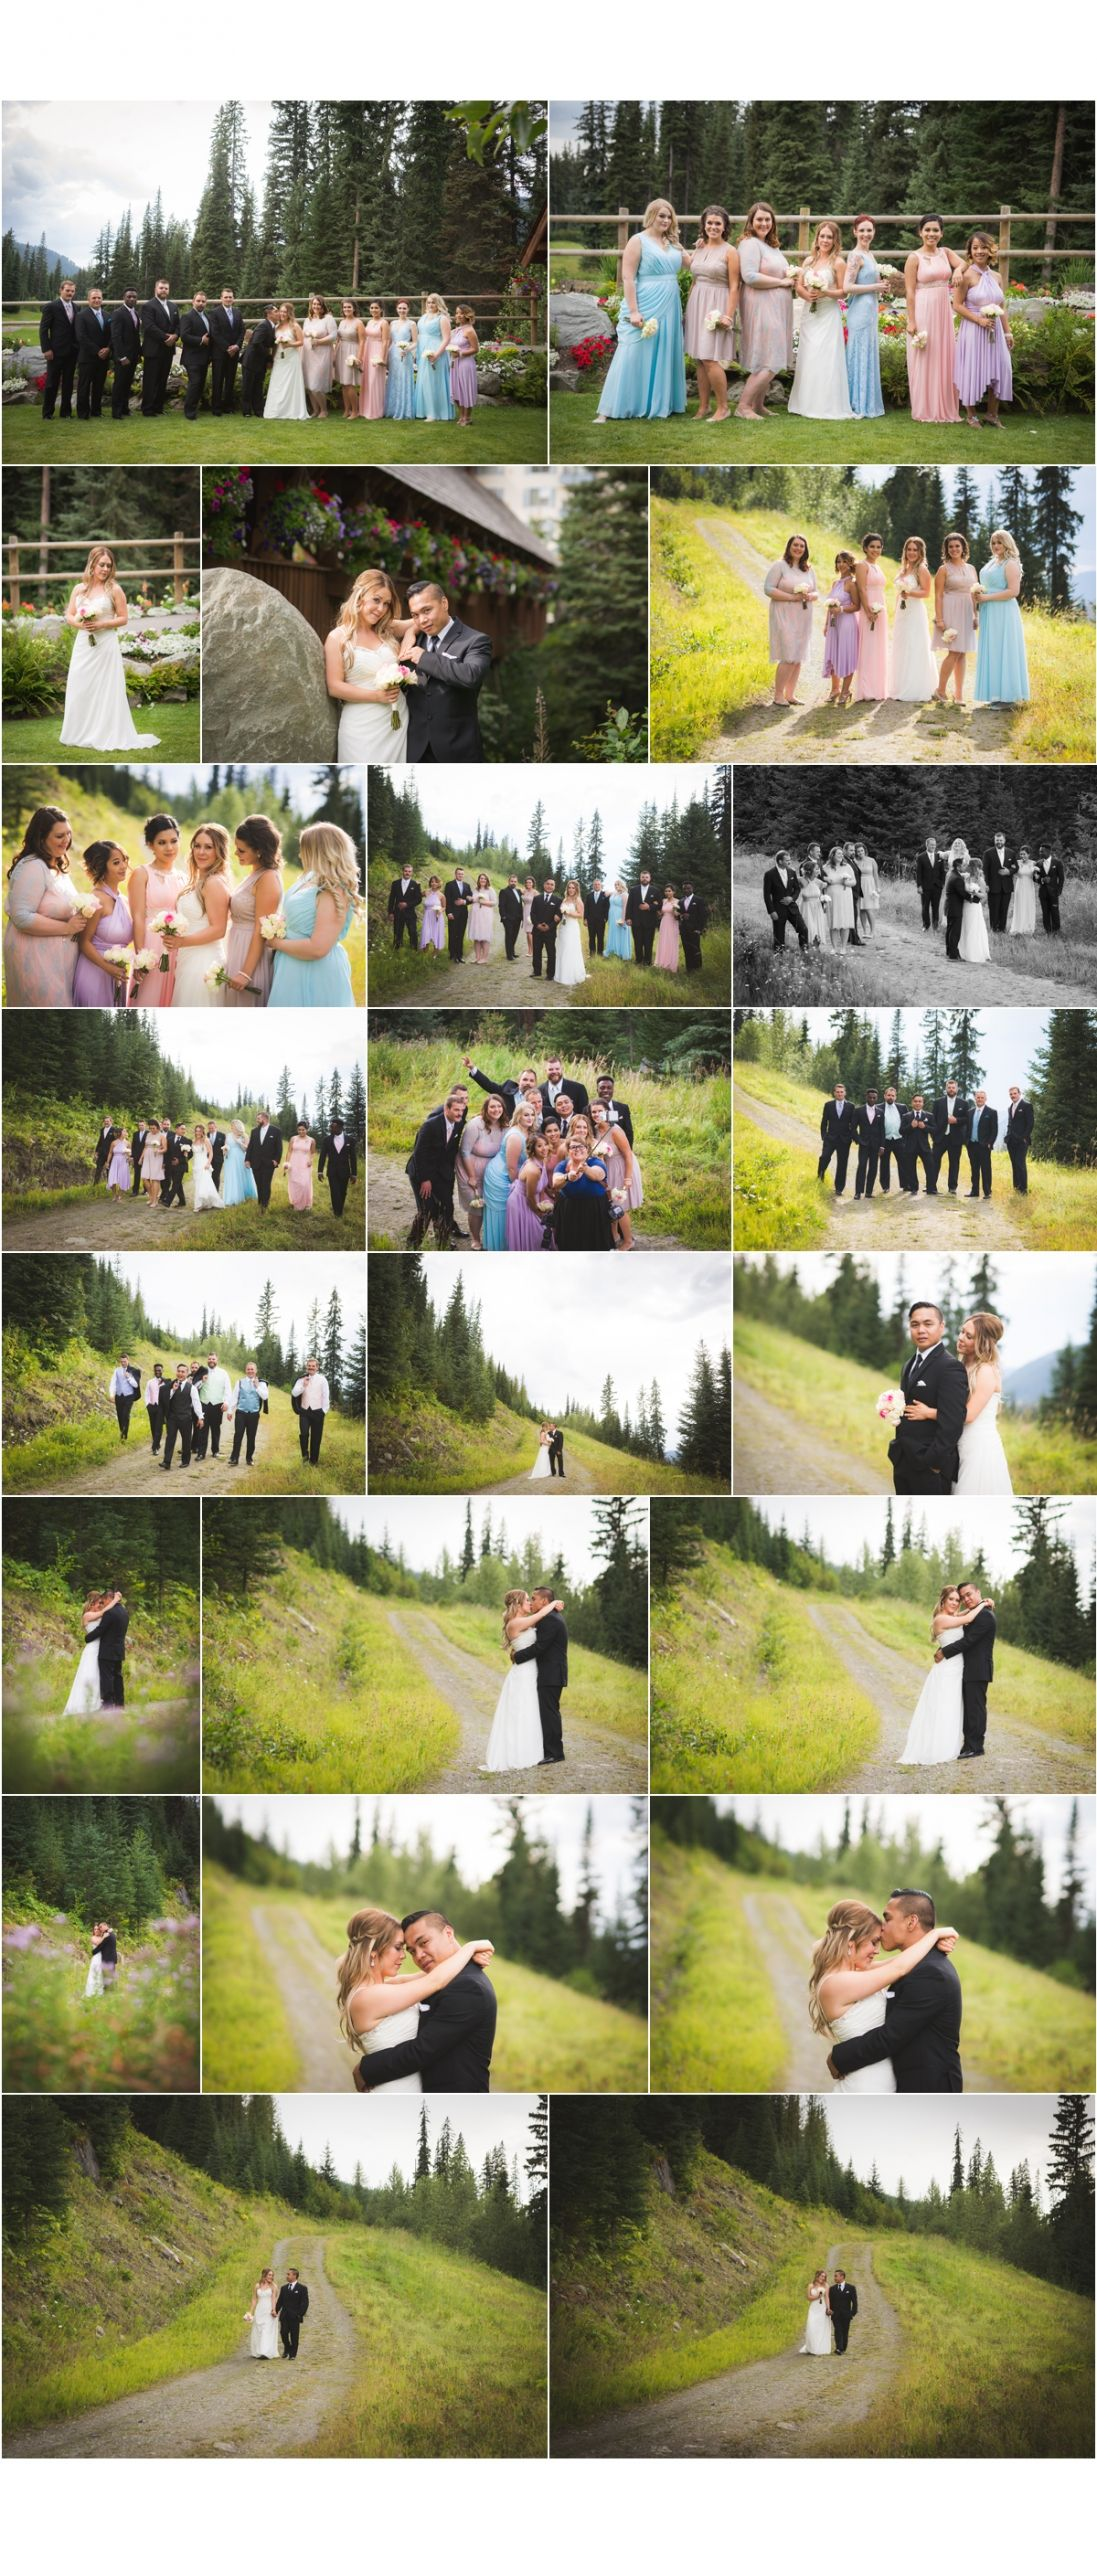 Edmonton wedding photographers sun peaks wedding sun peaks wedding edmonton wedding photographers sun peaks wedding sun peaks wedding photographer capture it photography ombrellifo Gallery